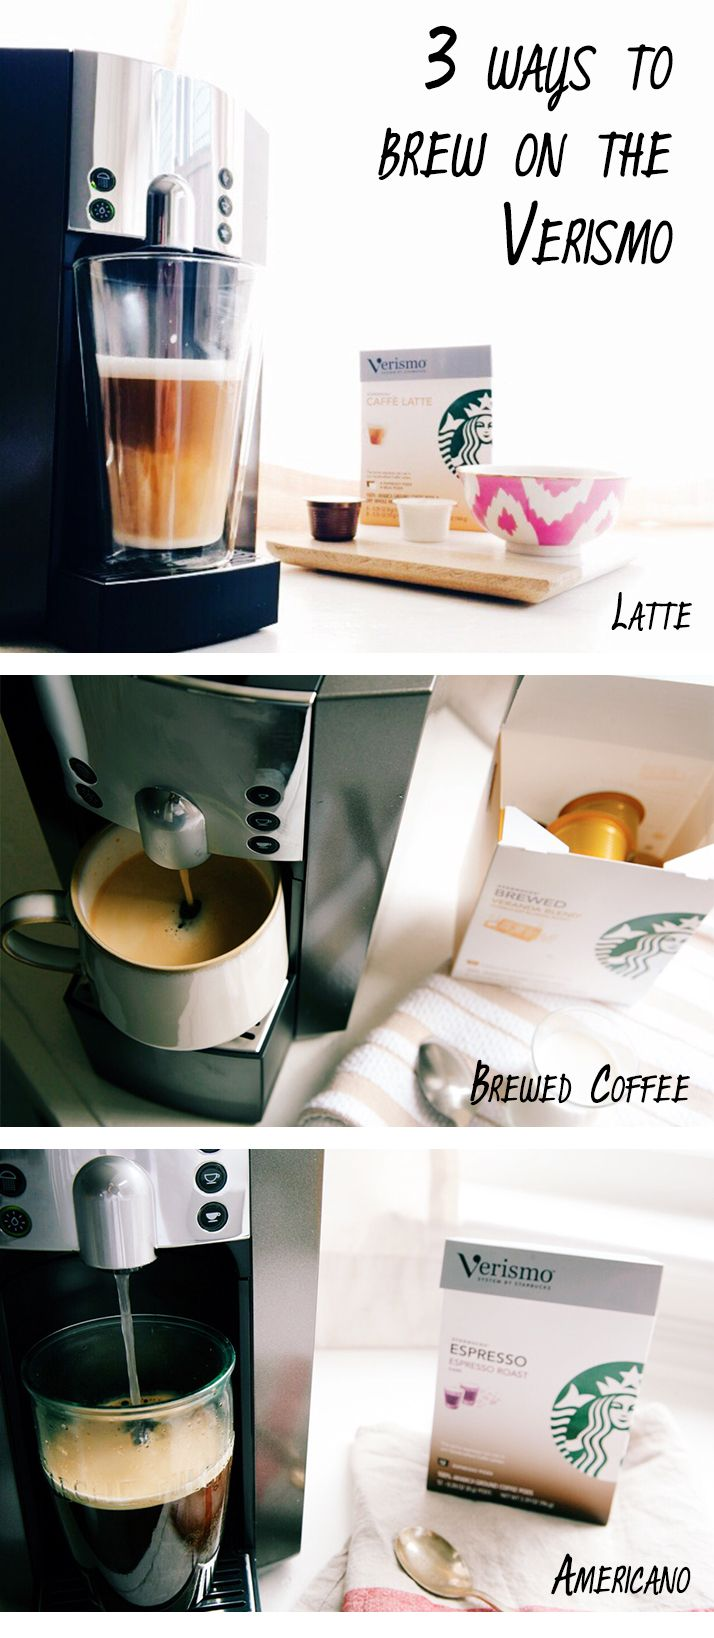 The new Verismo 600 has a hot water button making Americanos easy ...